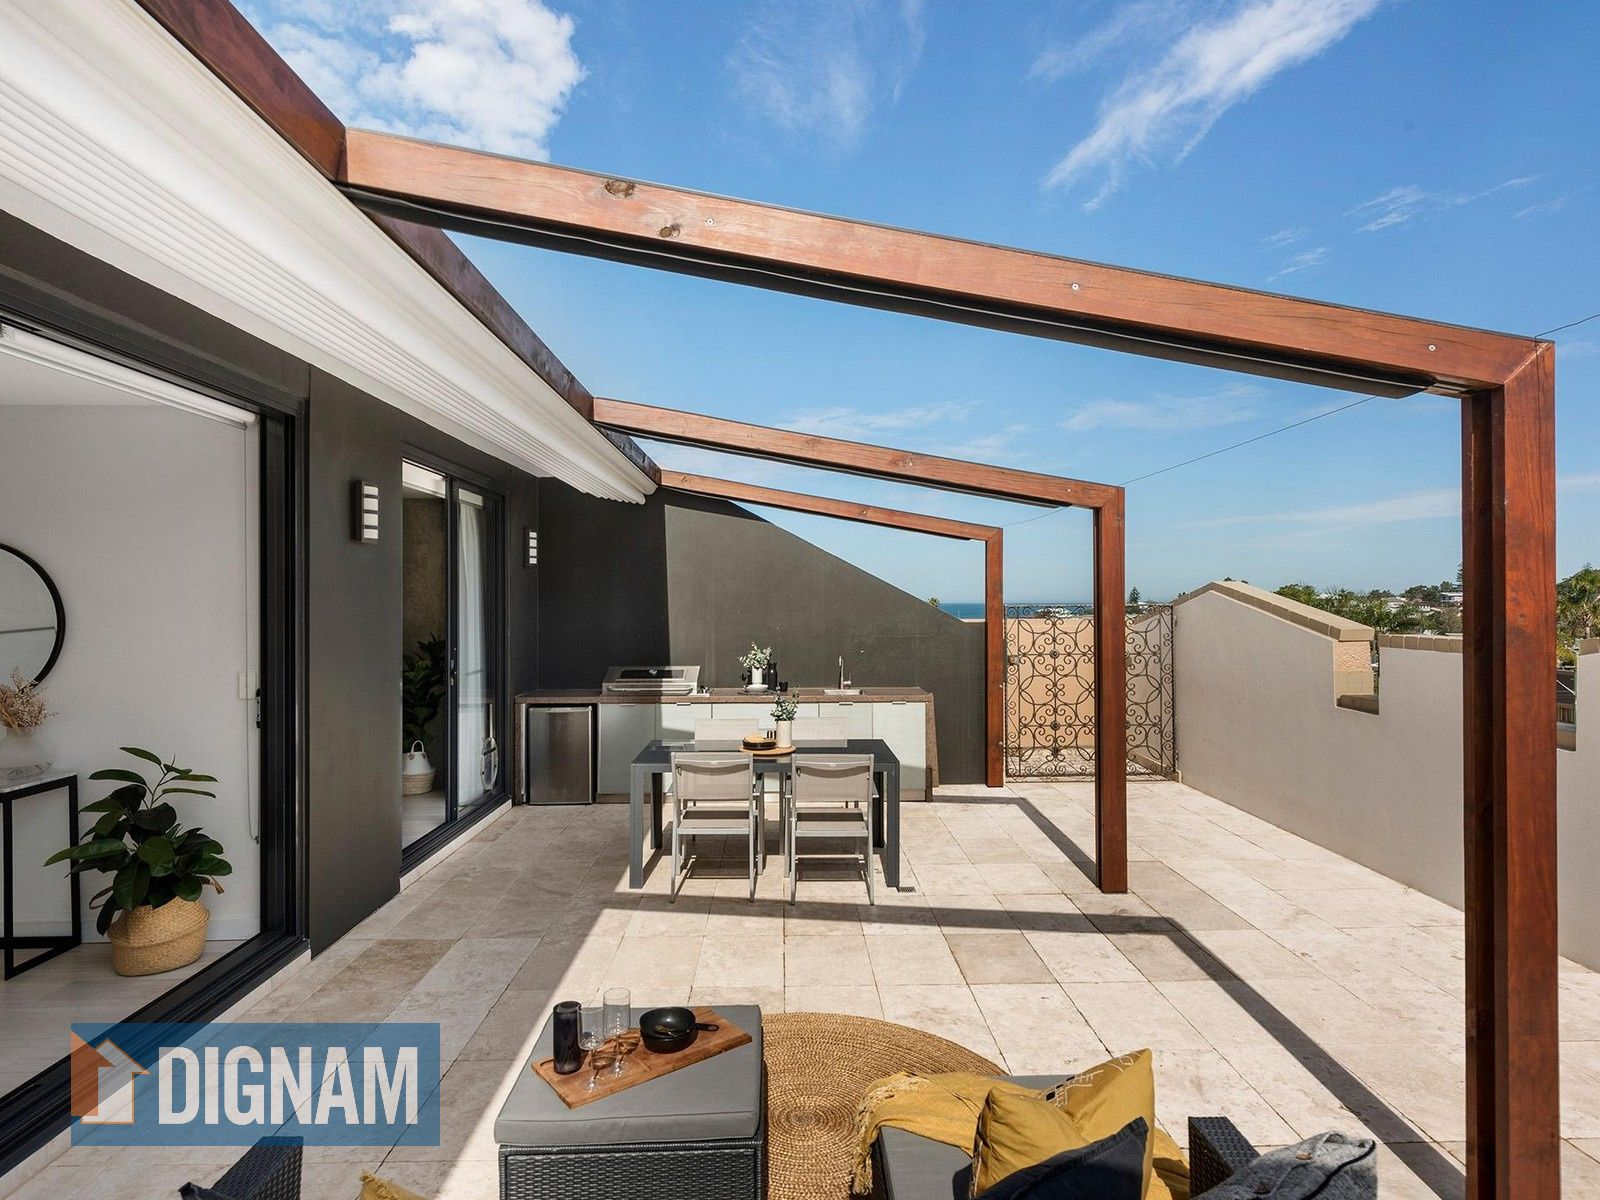 17/264-270 Lawrence Hargrave Drive, Thirroul NSW